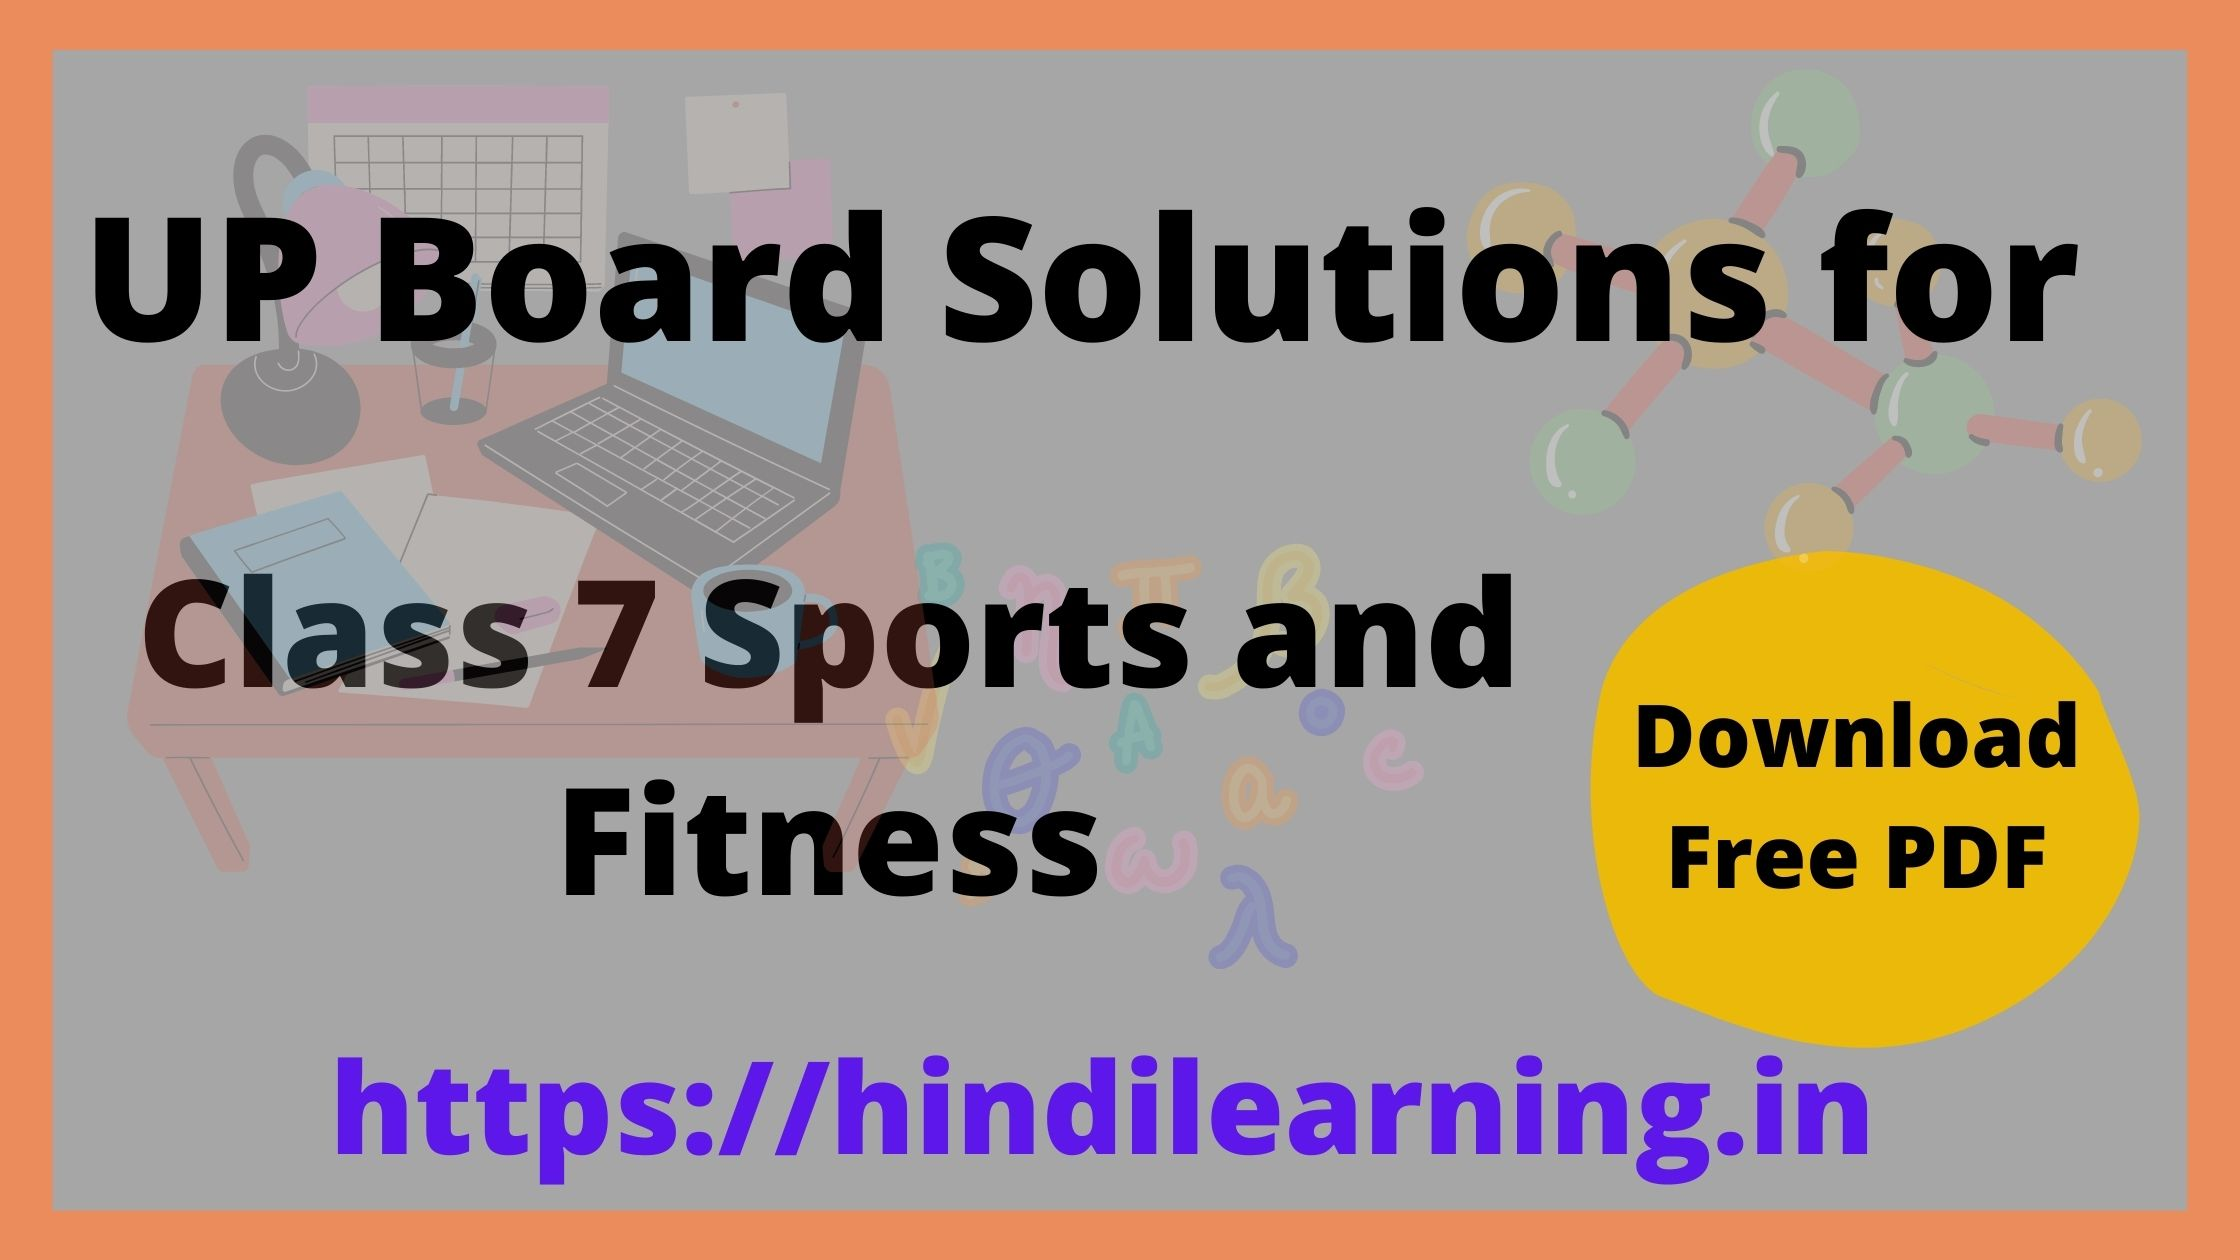 UP Board Solutions for Class 7 Sports and Fitness ( खेल और स्वास्थ्य )